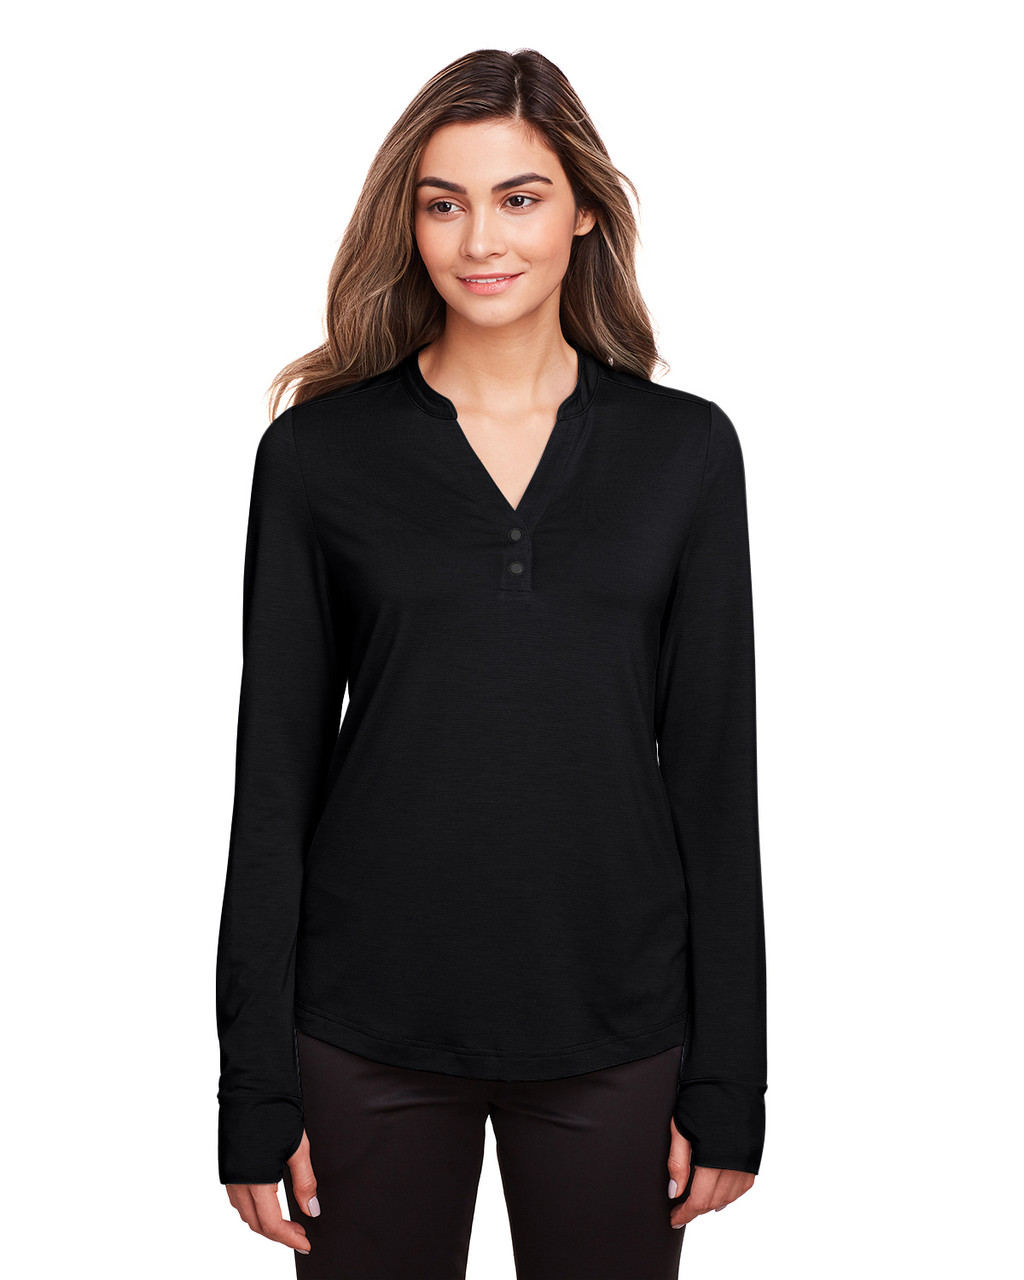 Black - NE400W North End Ladies' Jaq Snap-Up Stretch Performance Pullover Long Sleeve Shirt | BlankClothing.ca